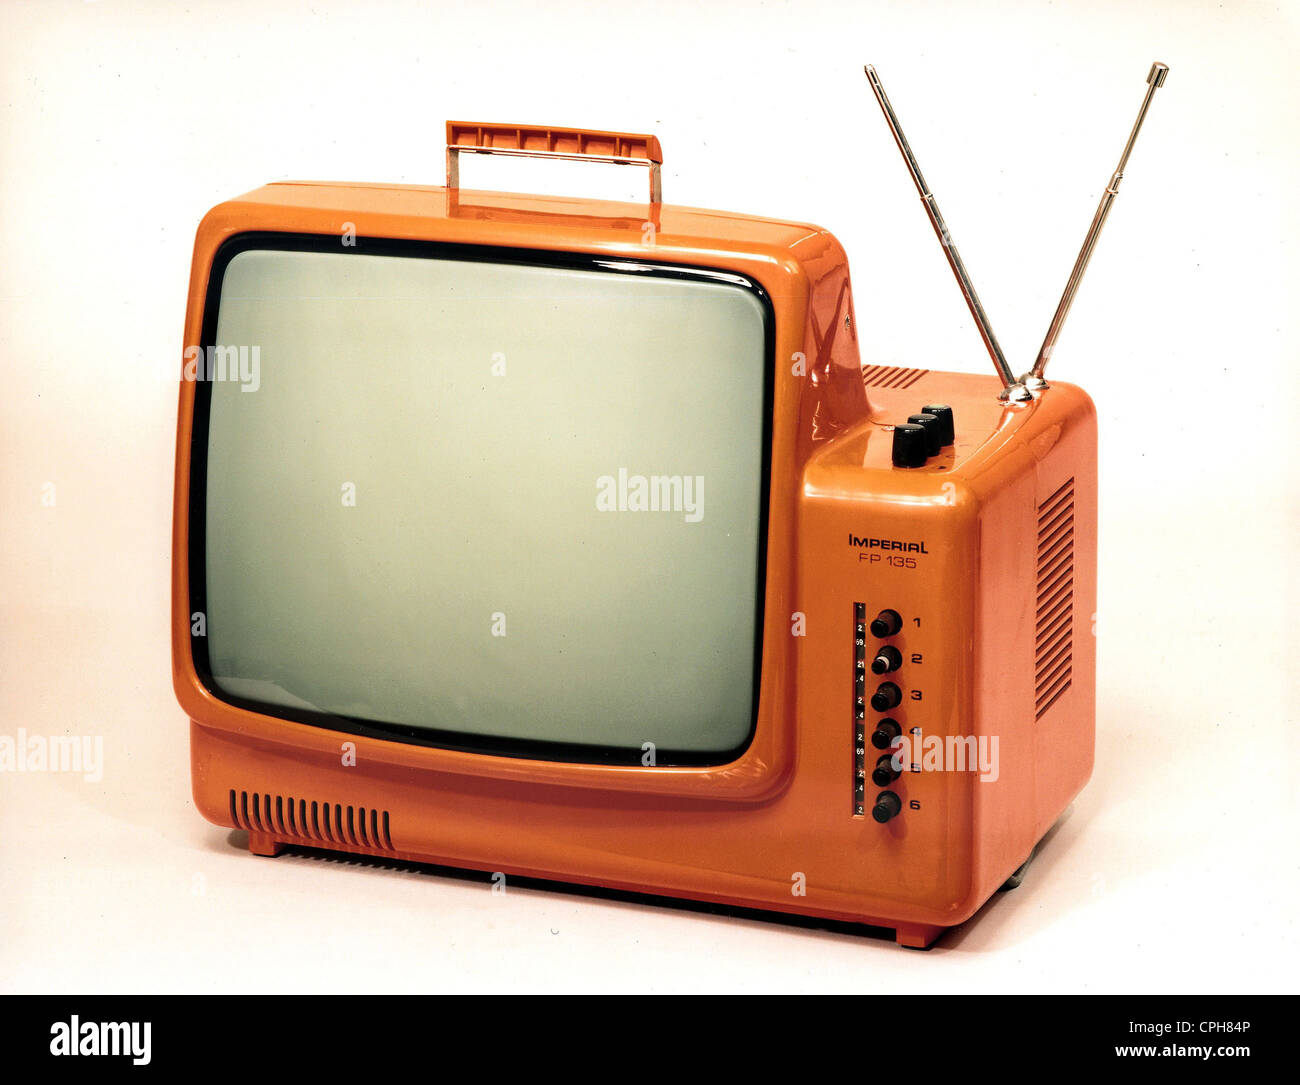 Television Set 1970s Stock Photos & Television Set 1970s